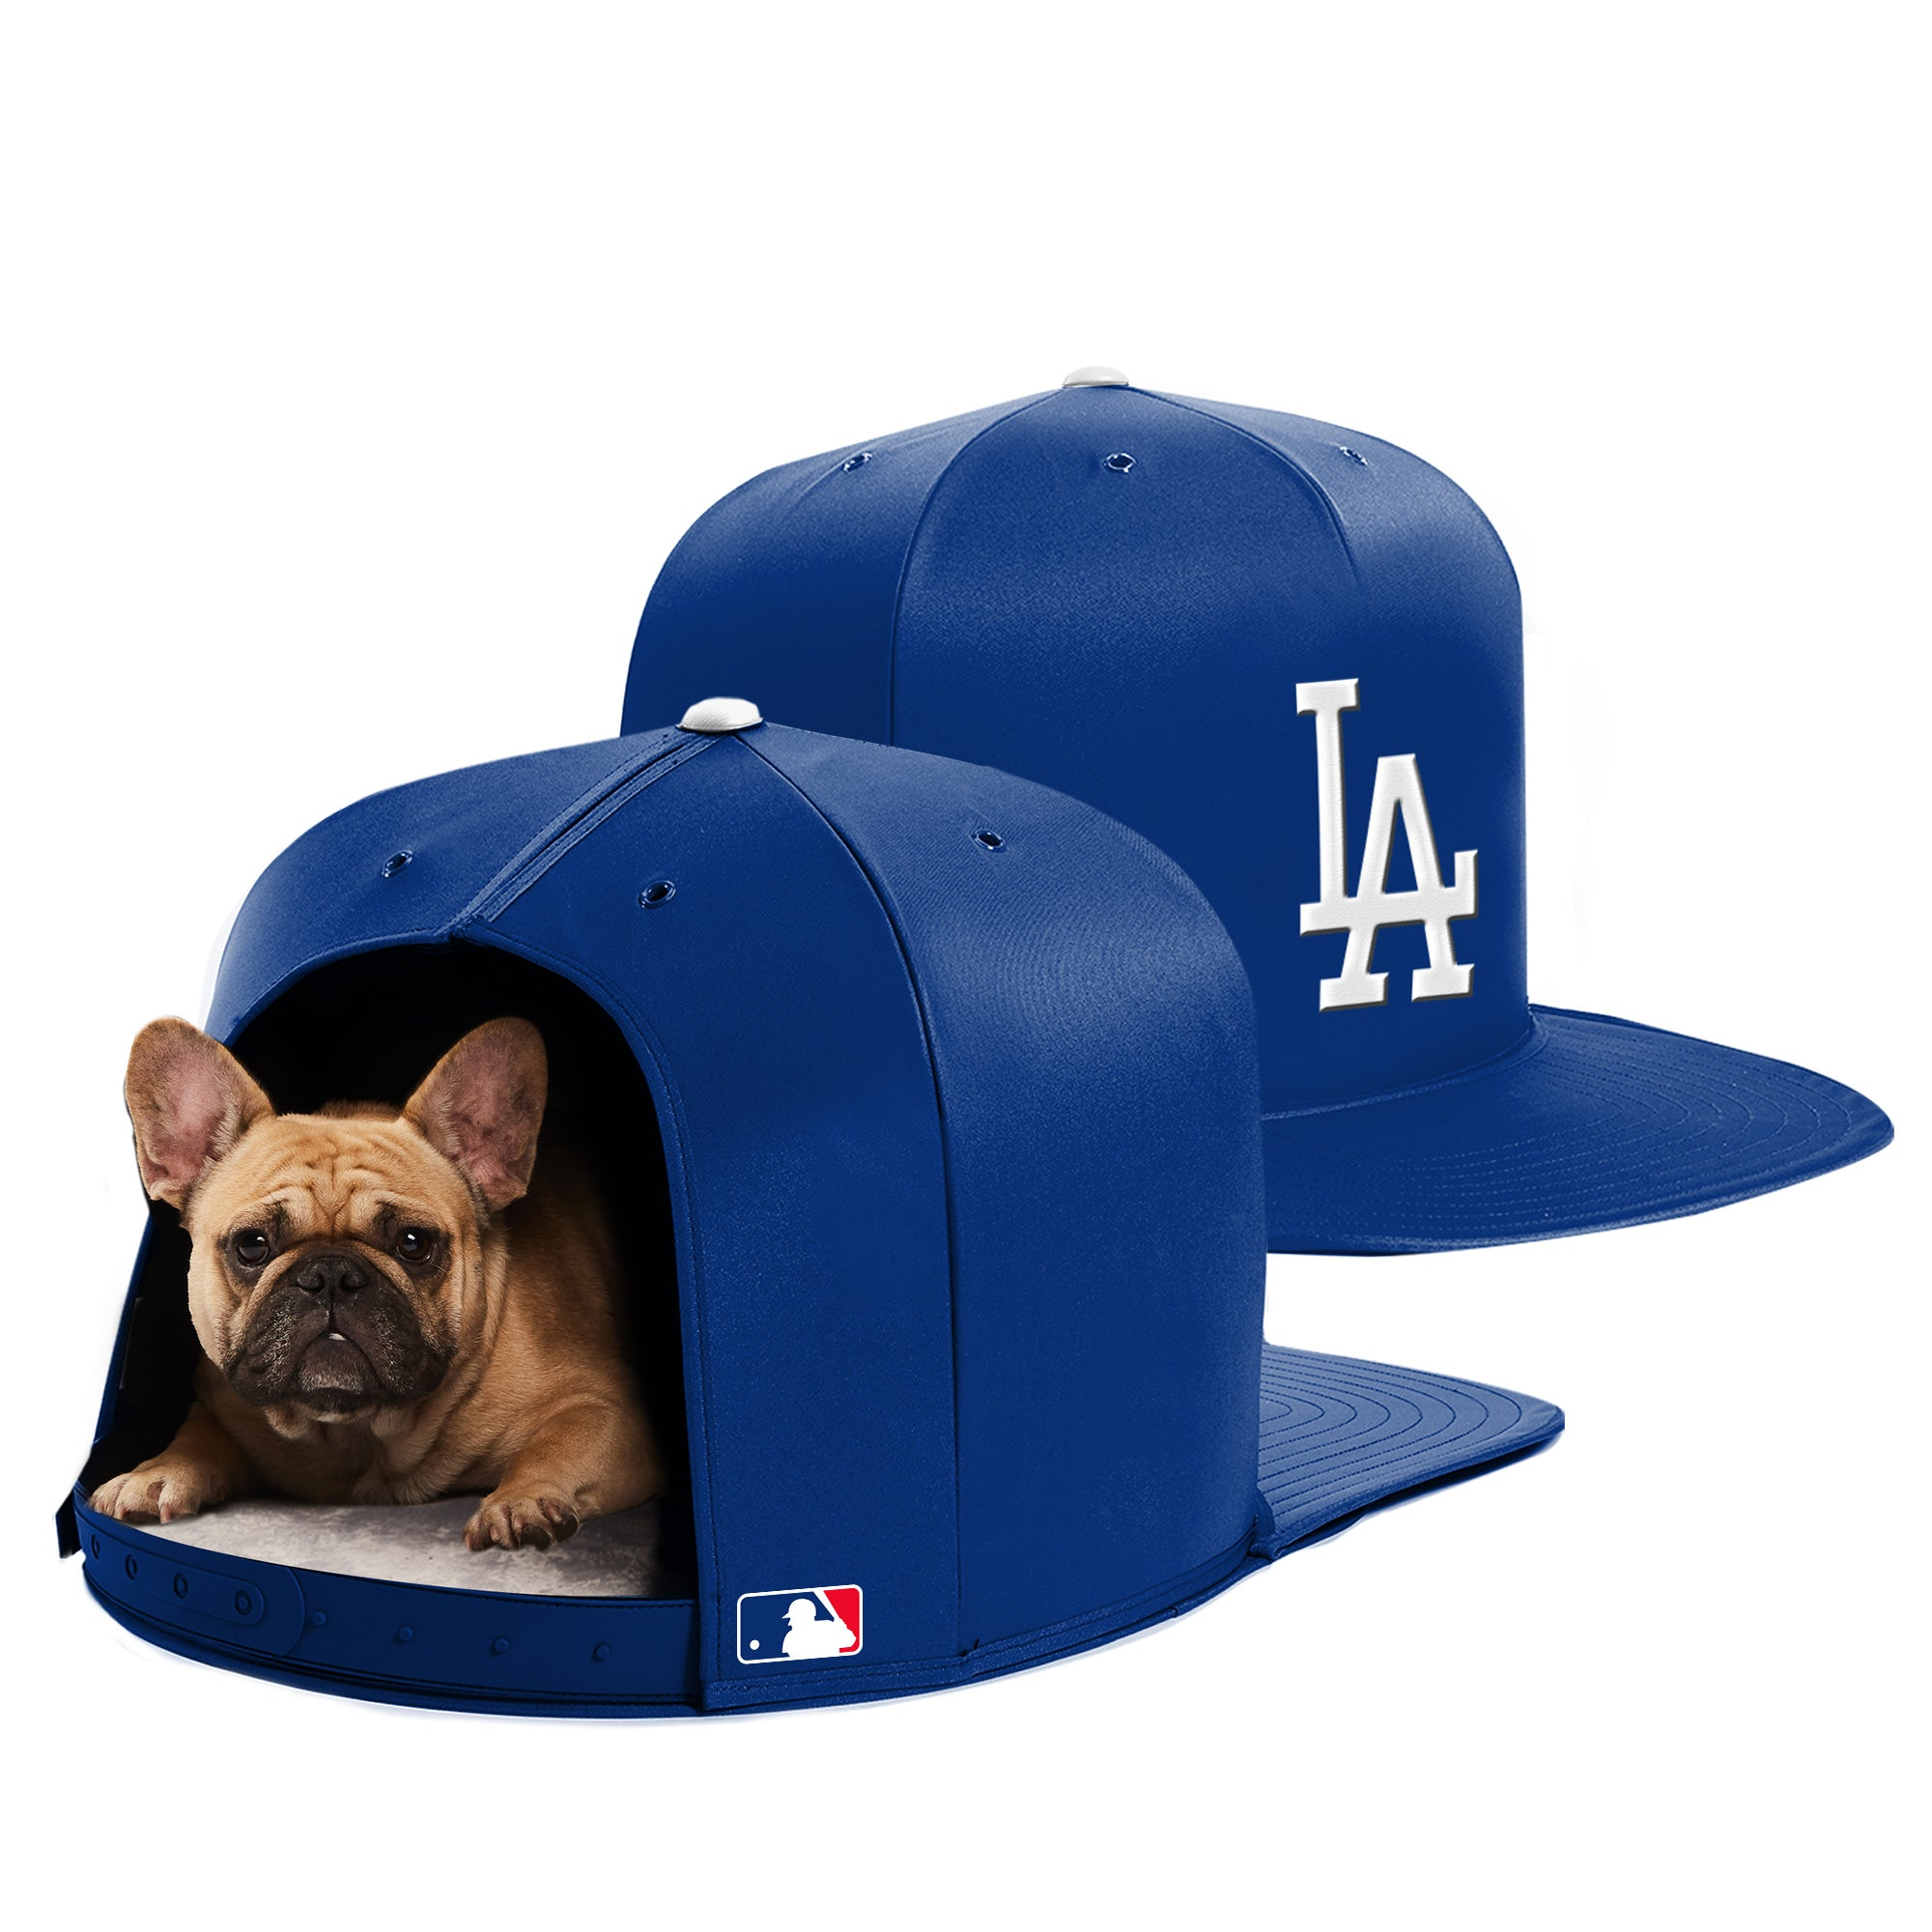 83be541d006 Nap Cap - Los Angeles Dodgers - Pet Bed